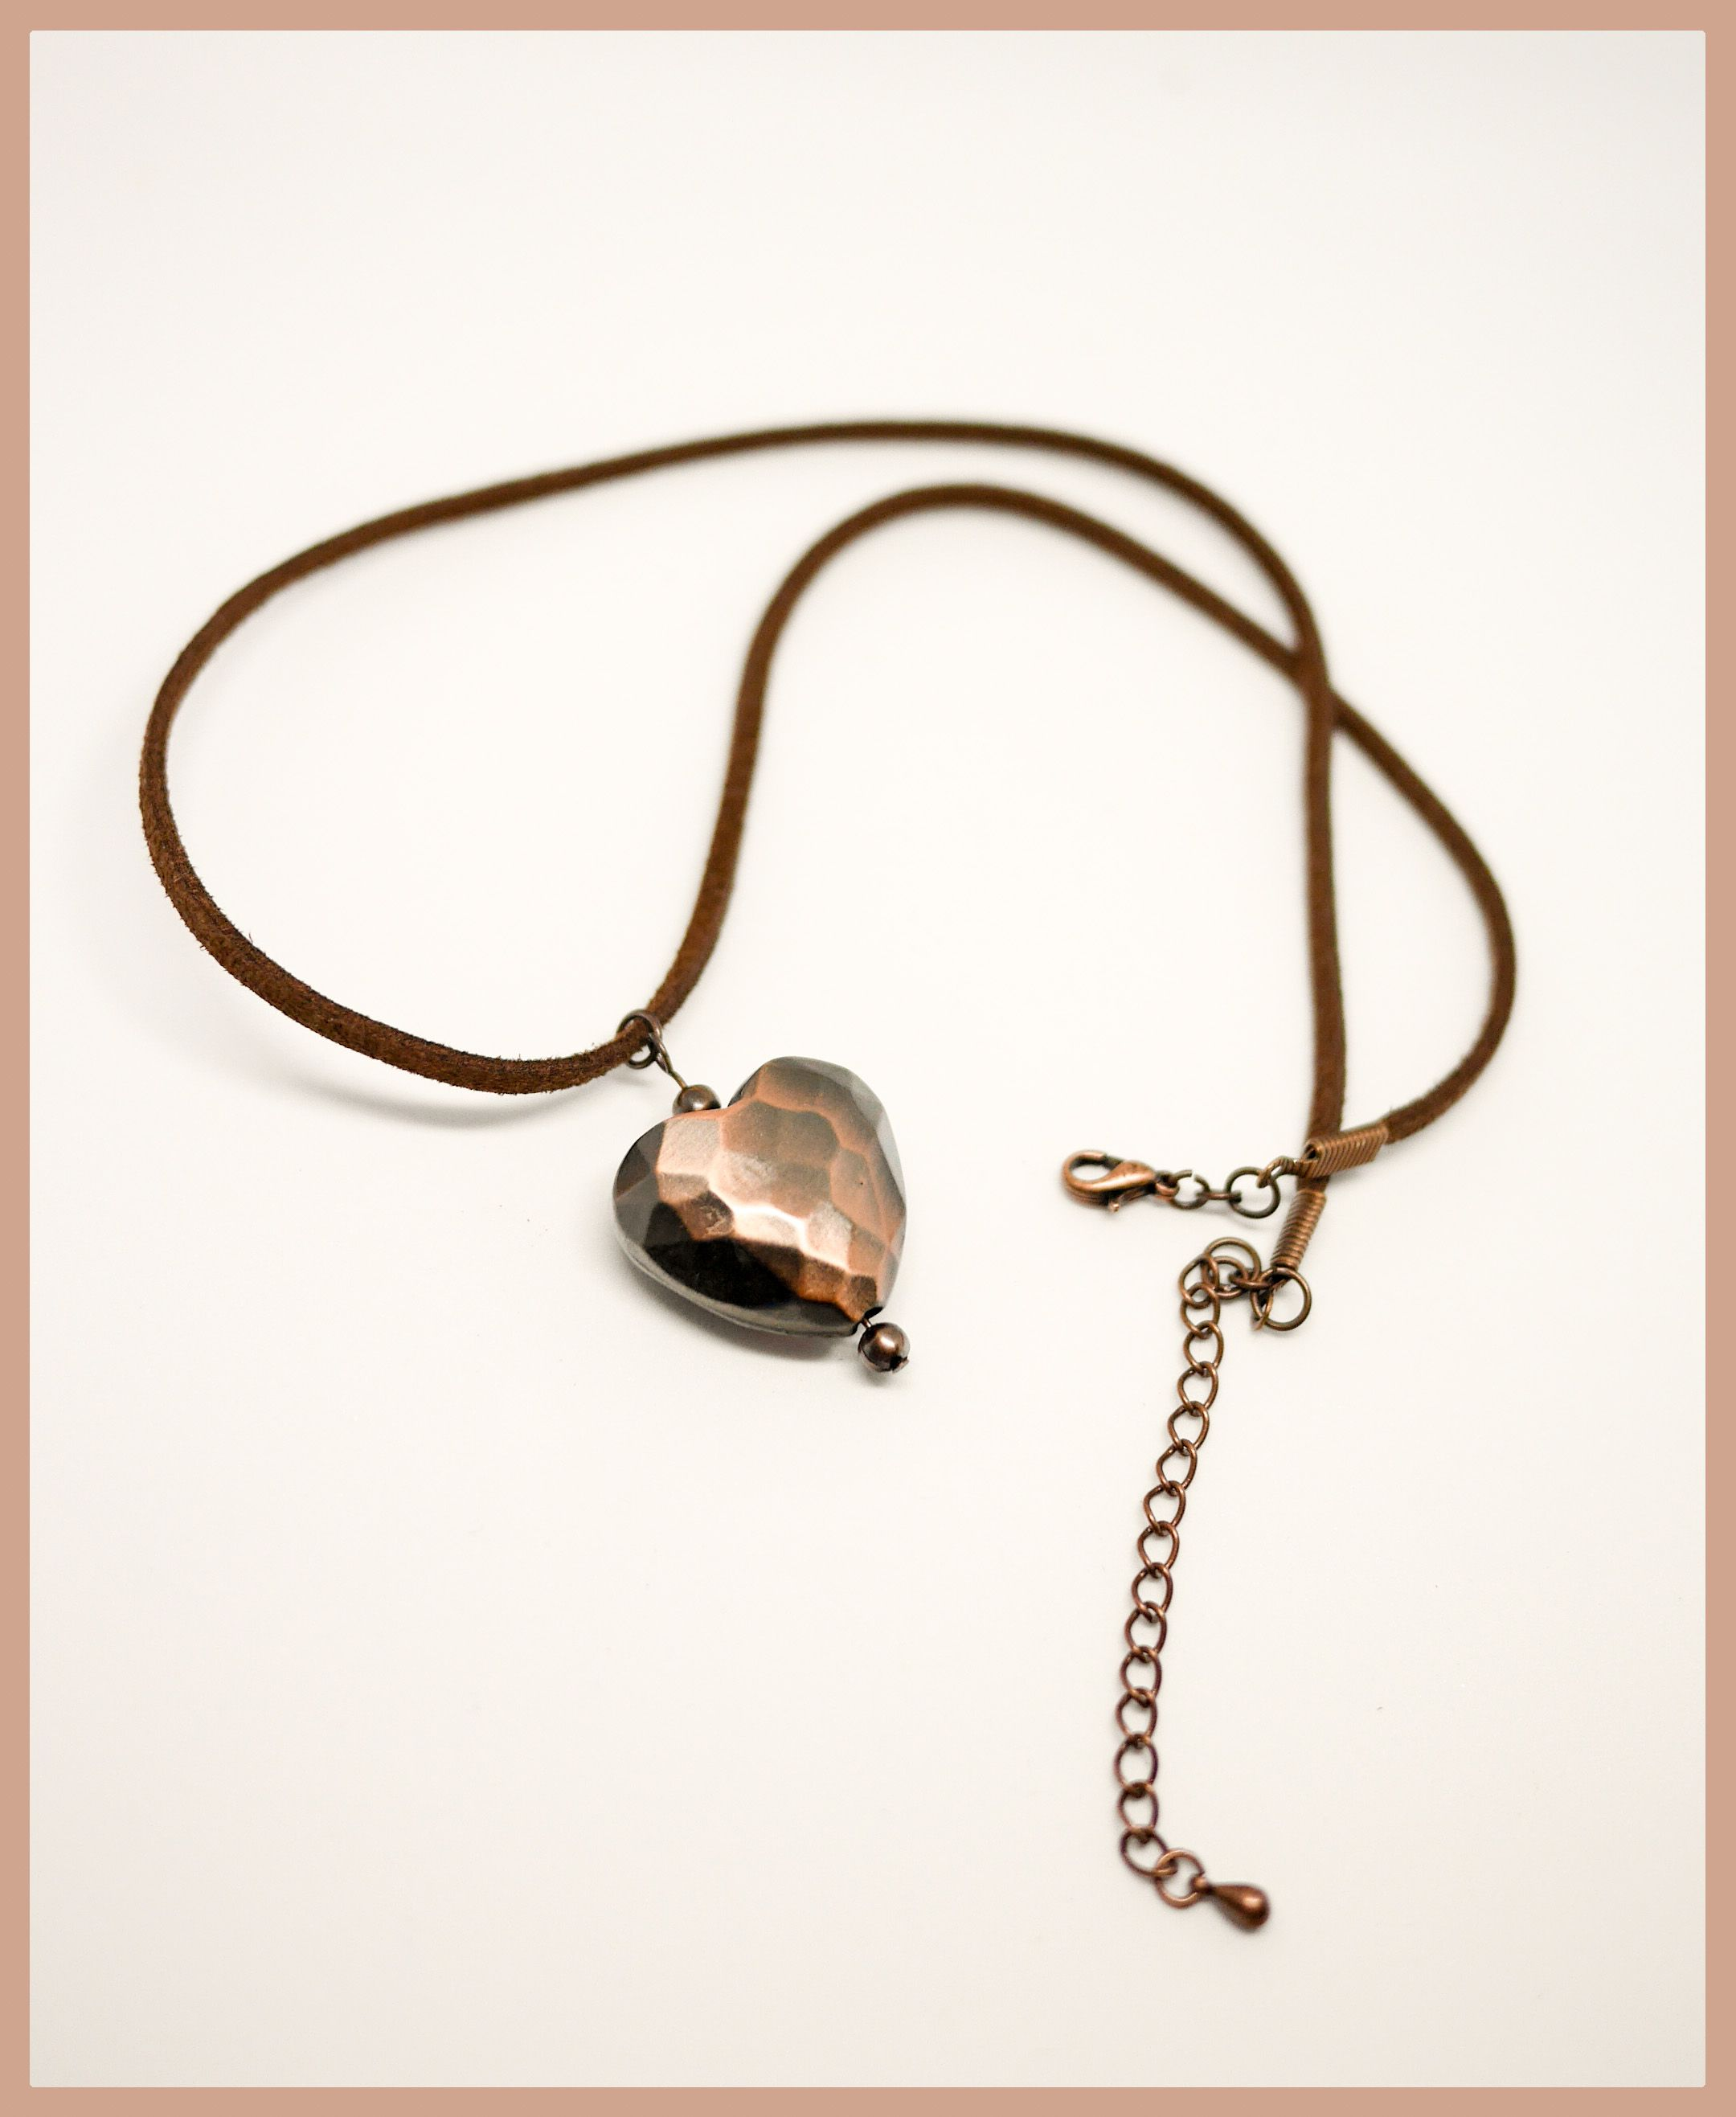 Simple but effective copper coloured necklace in lightweight acrylic